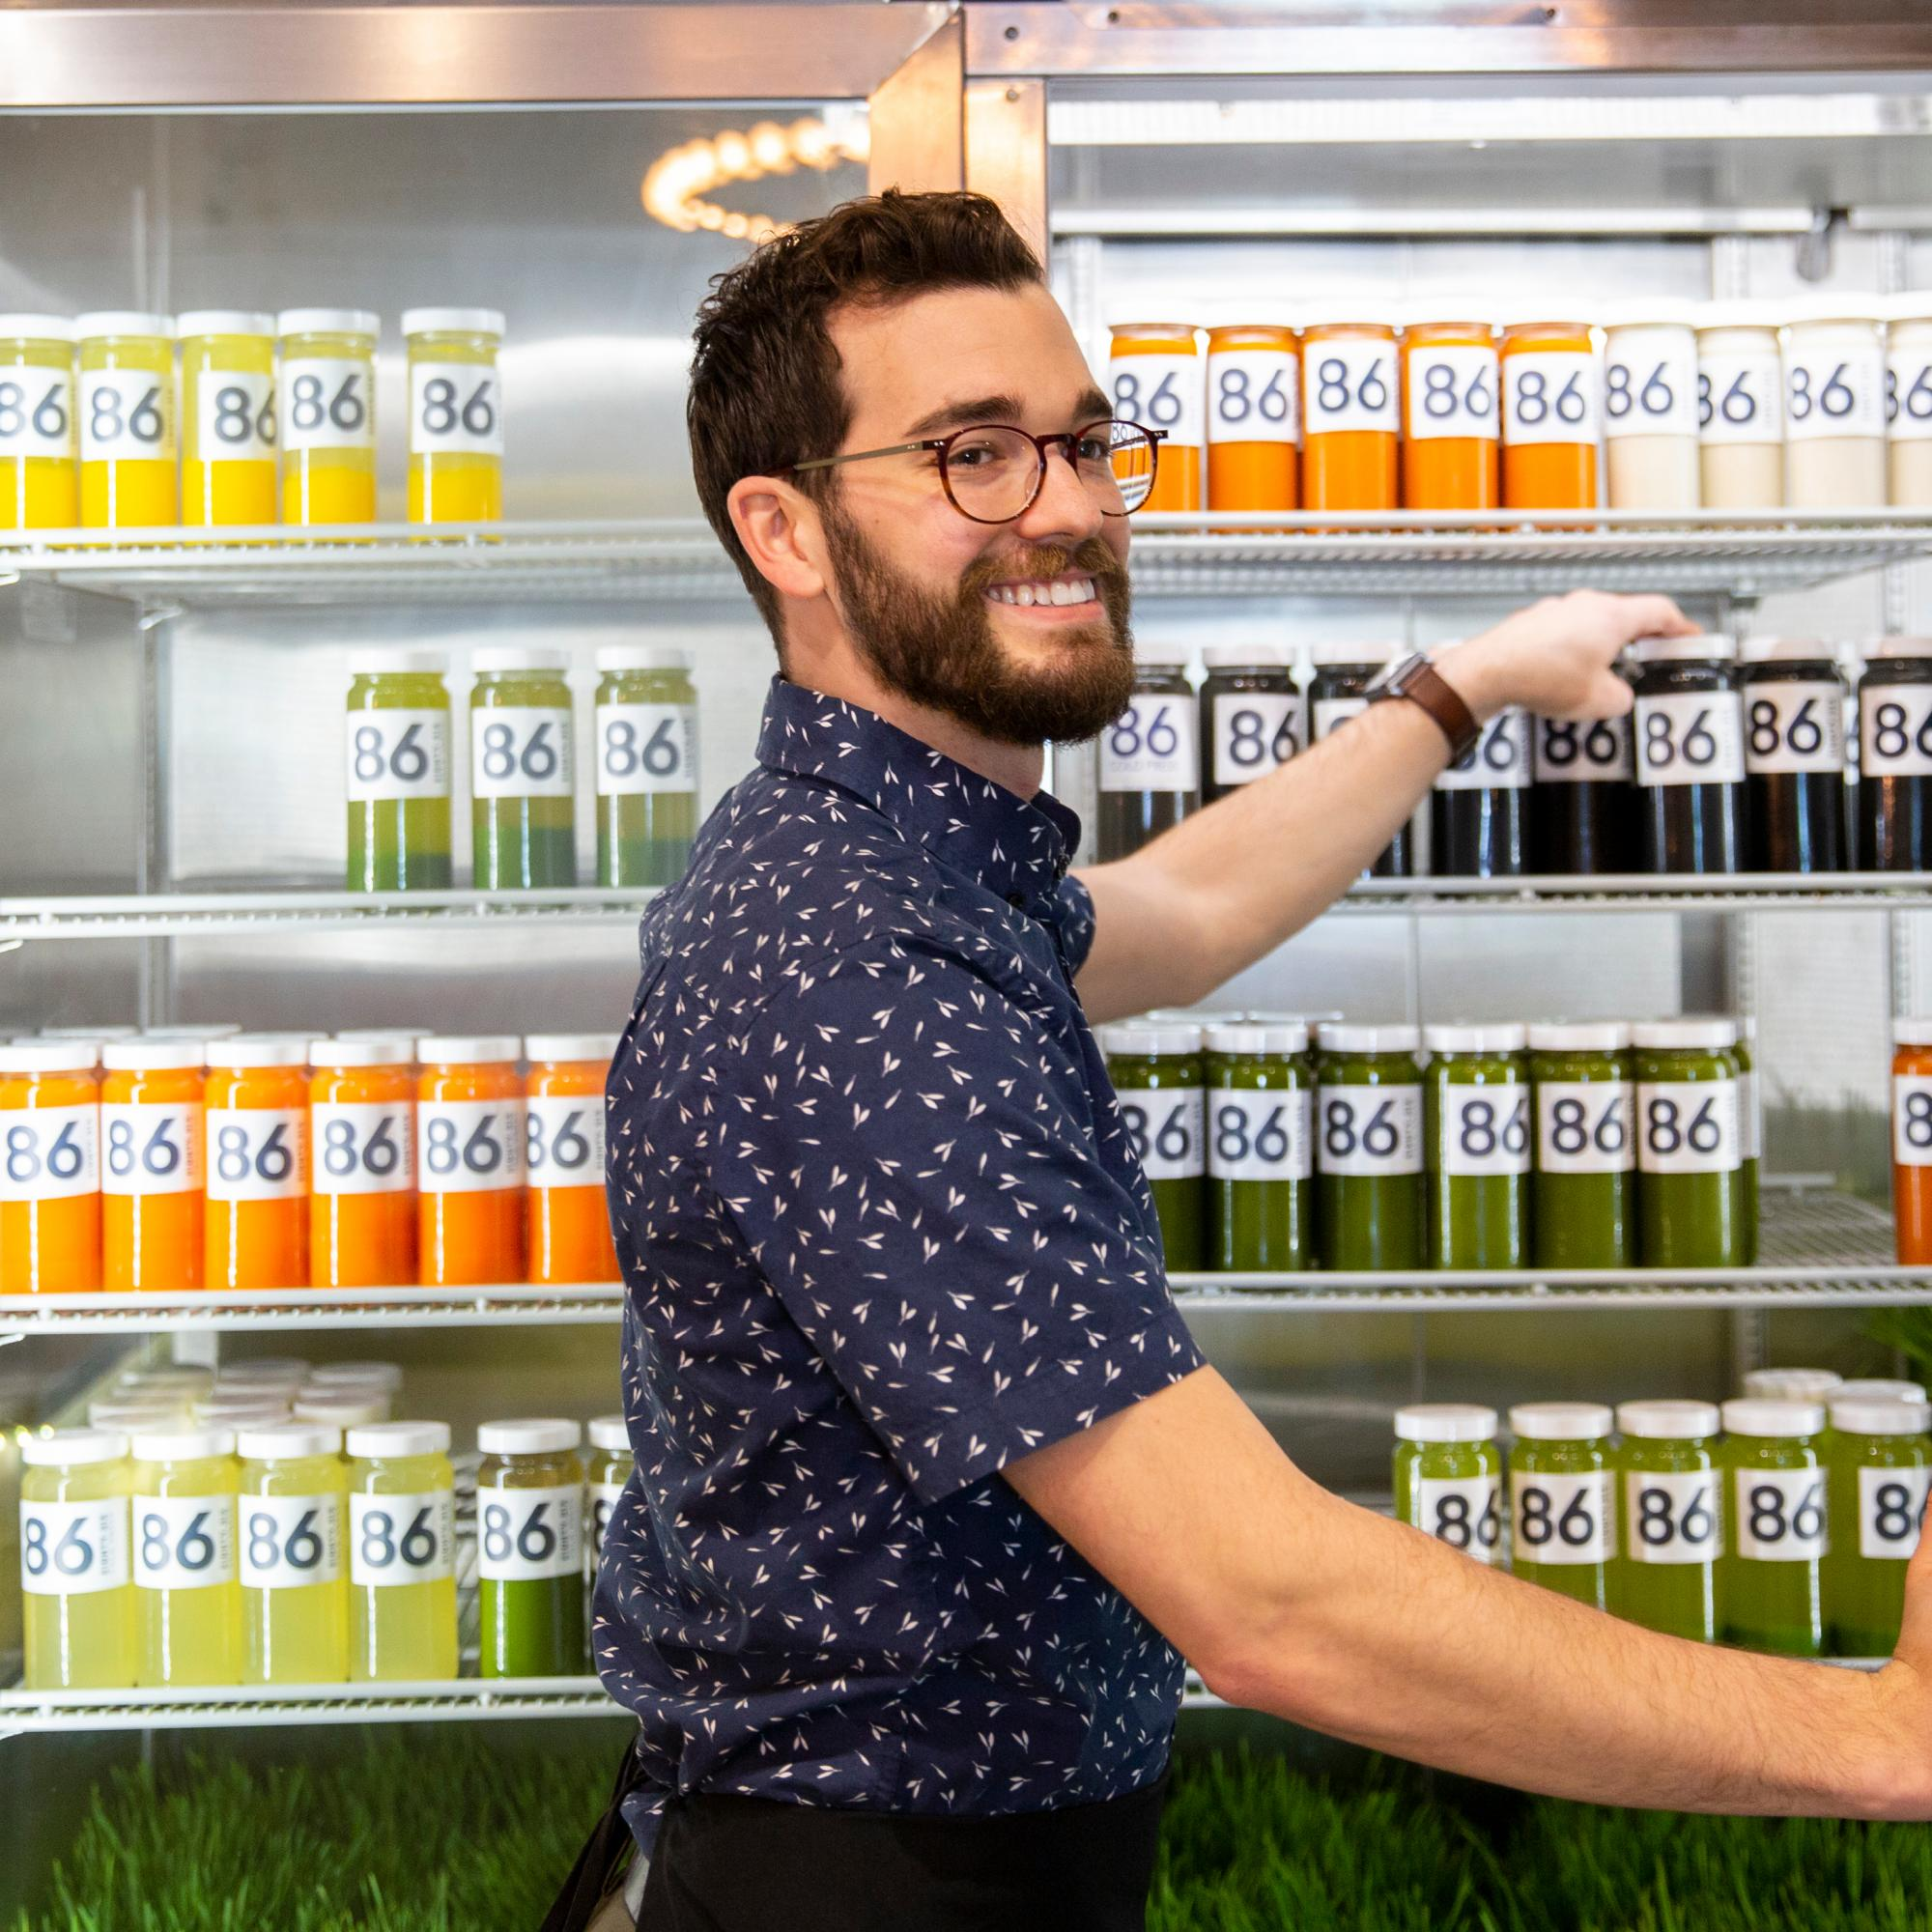 founder of 86 cold press juice in wichita, kansas